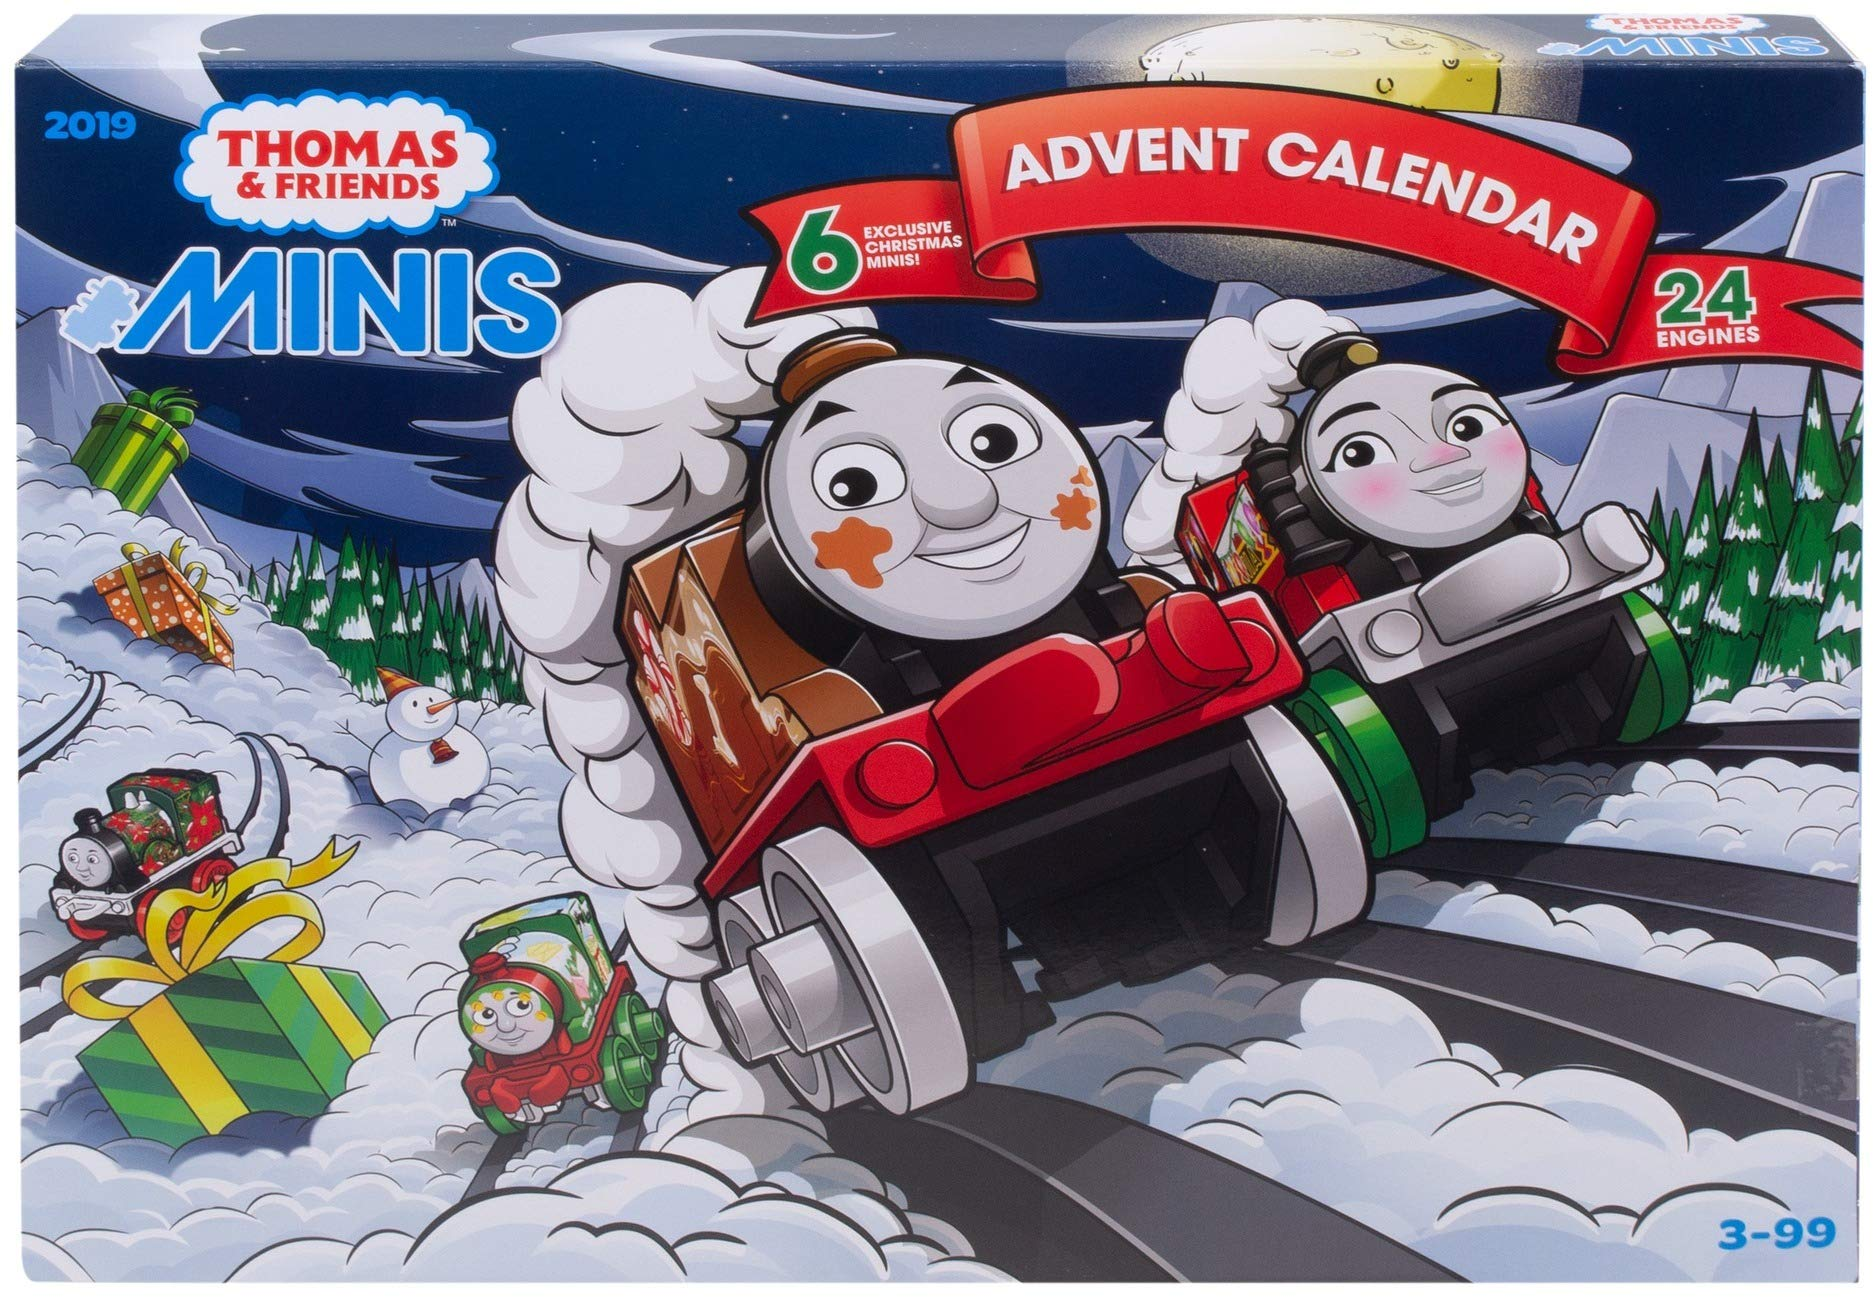 Thomas & Friends Fisher-Price Minis, Advent Calendar 2019 by Thomas & Friends